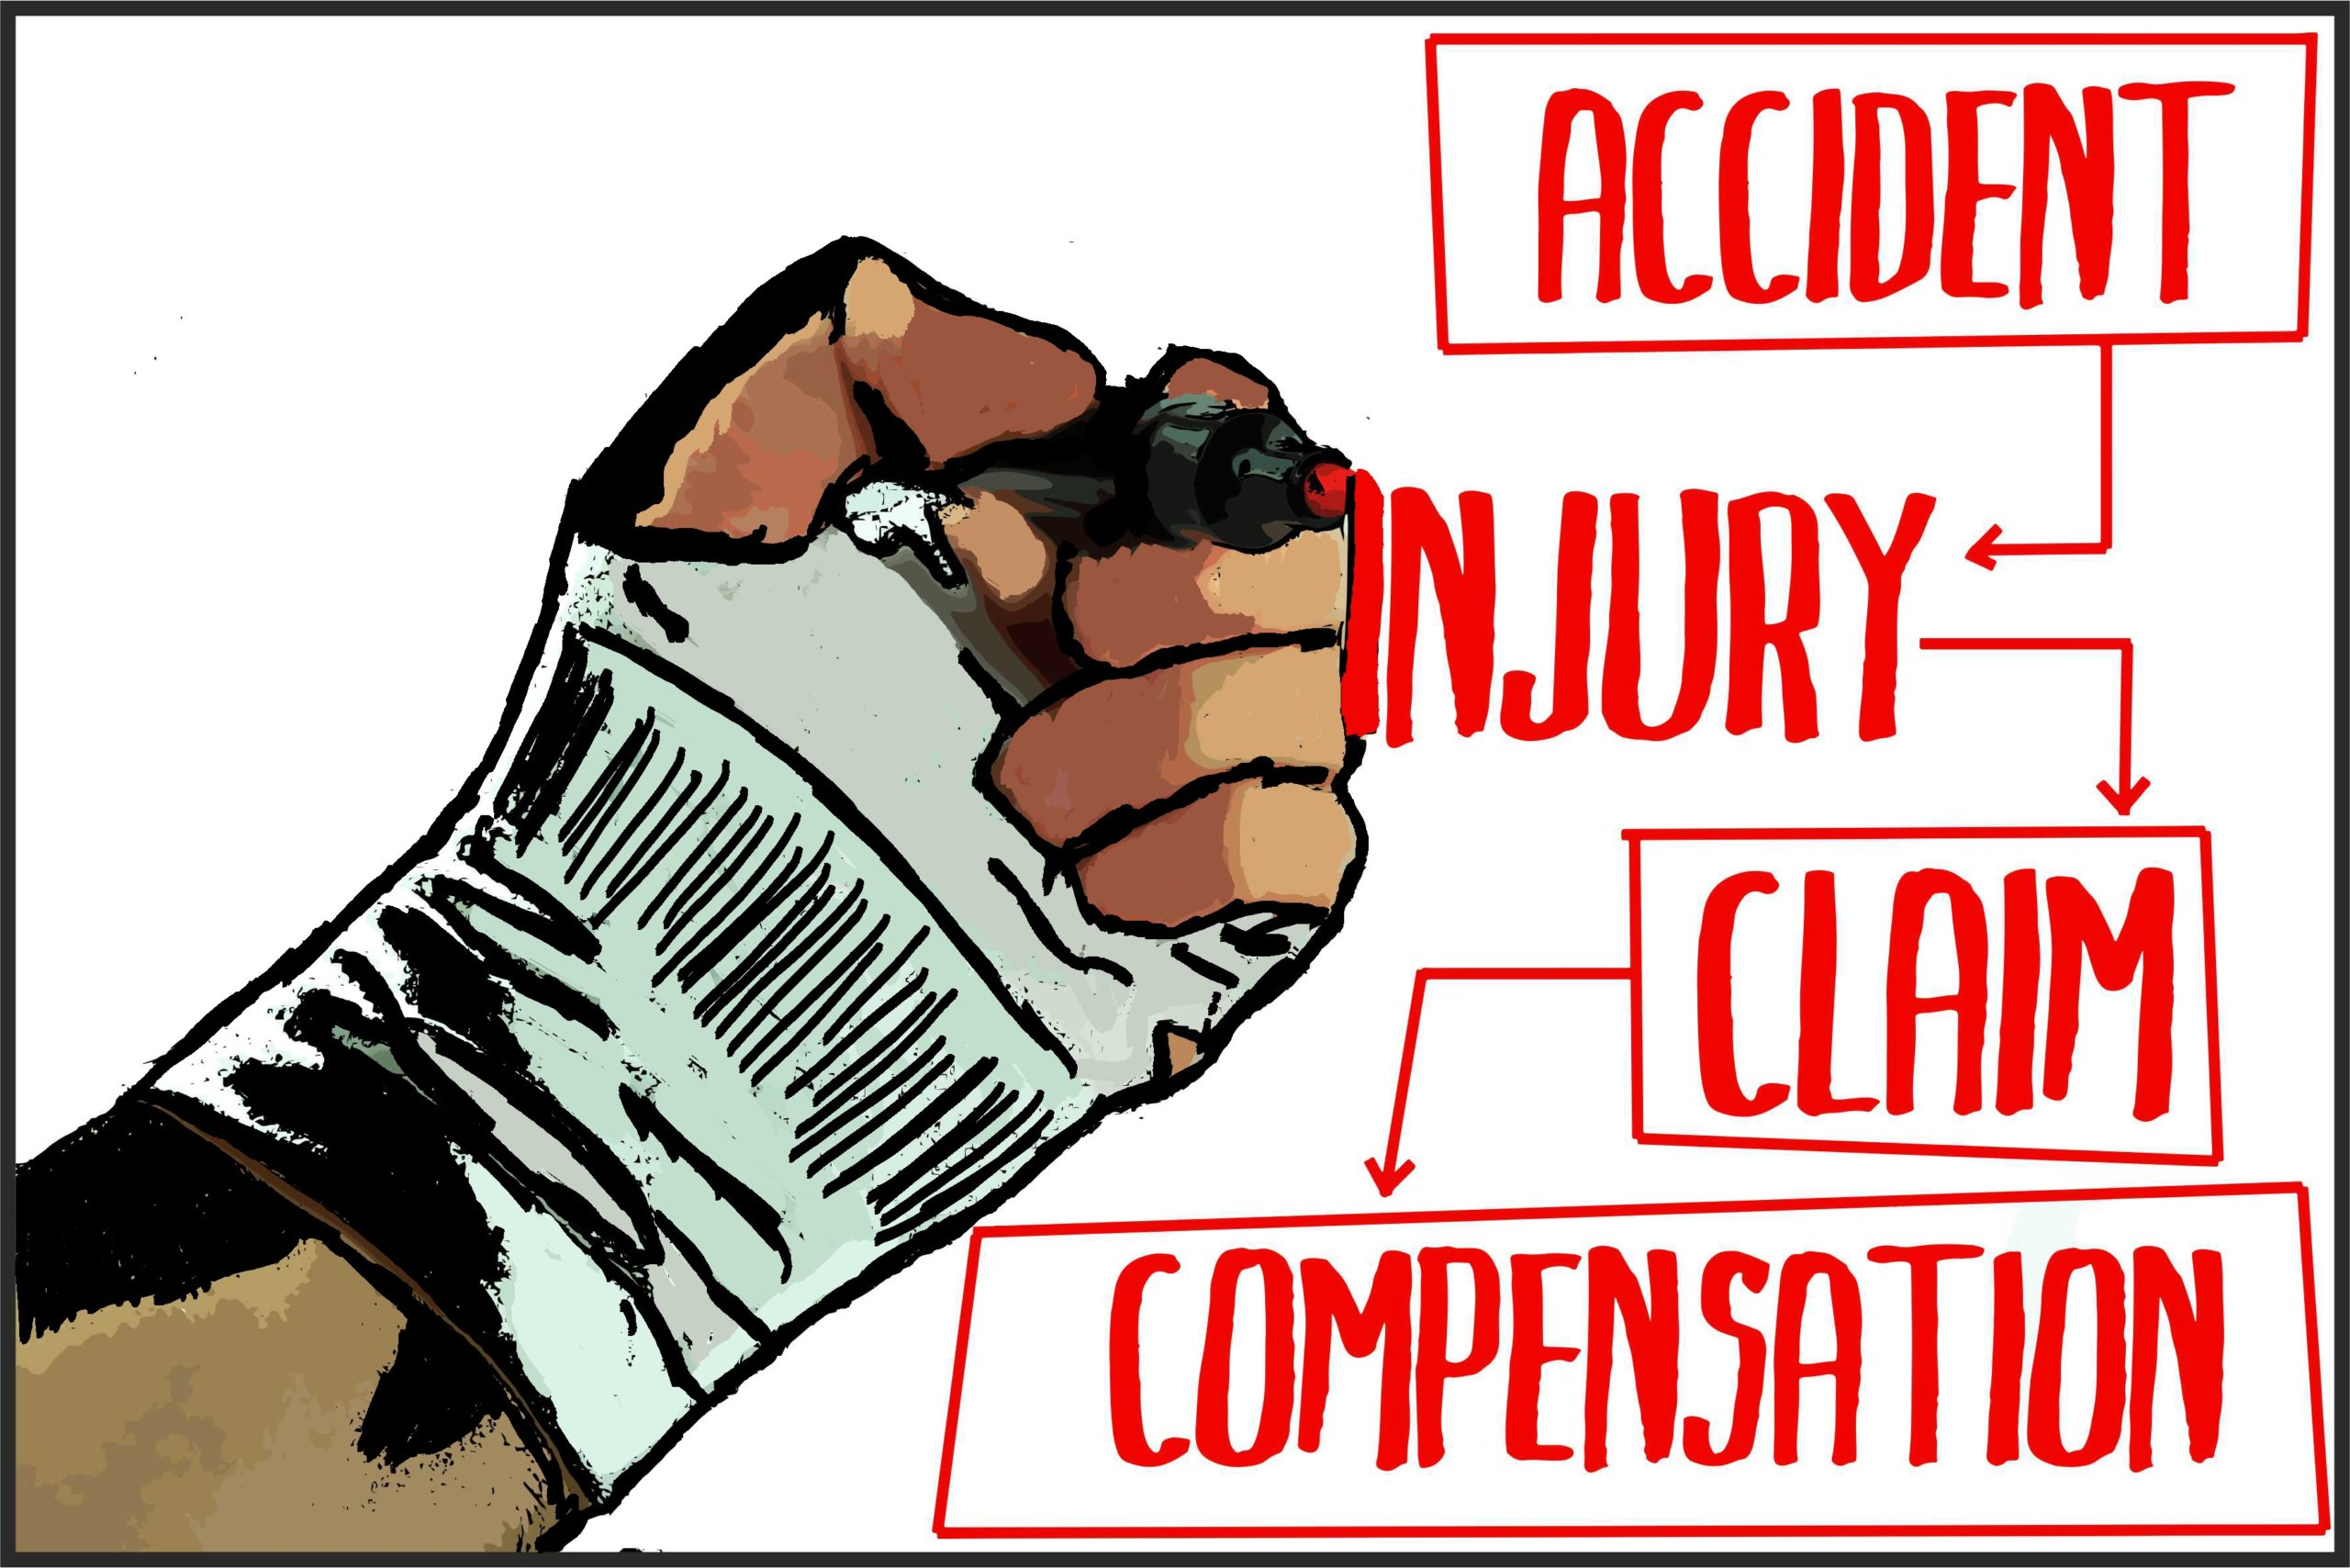 Filing a personal injury lawsuit in Las Vegas